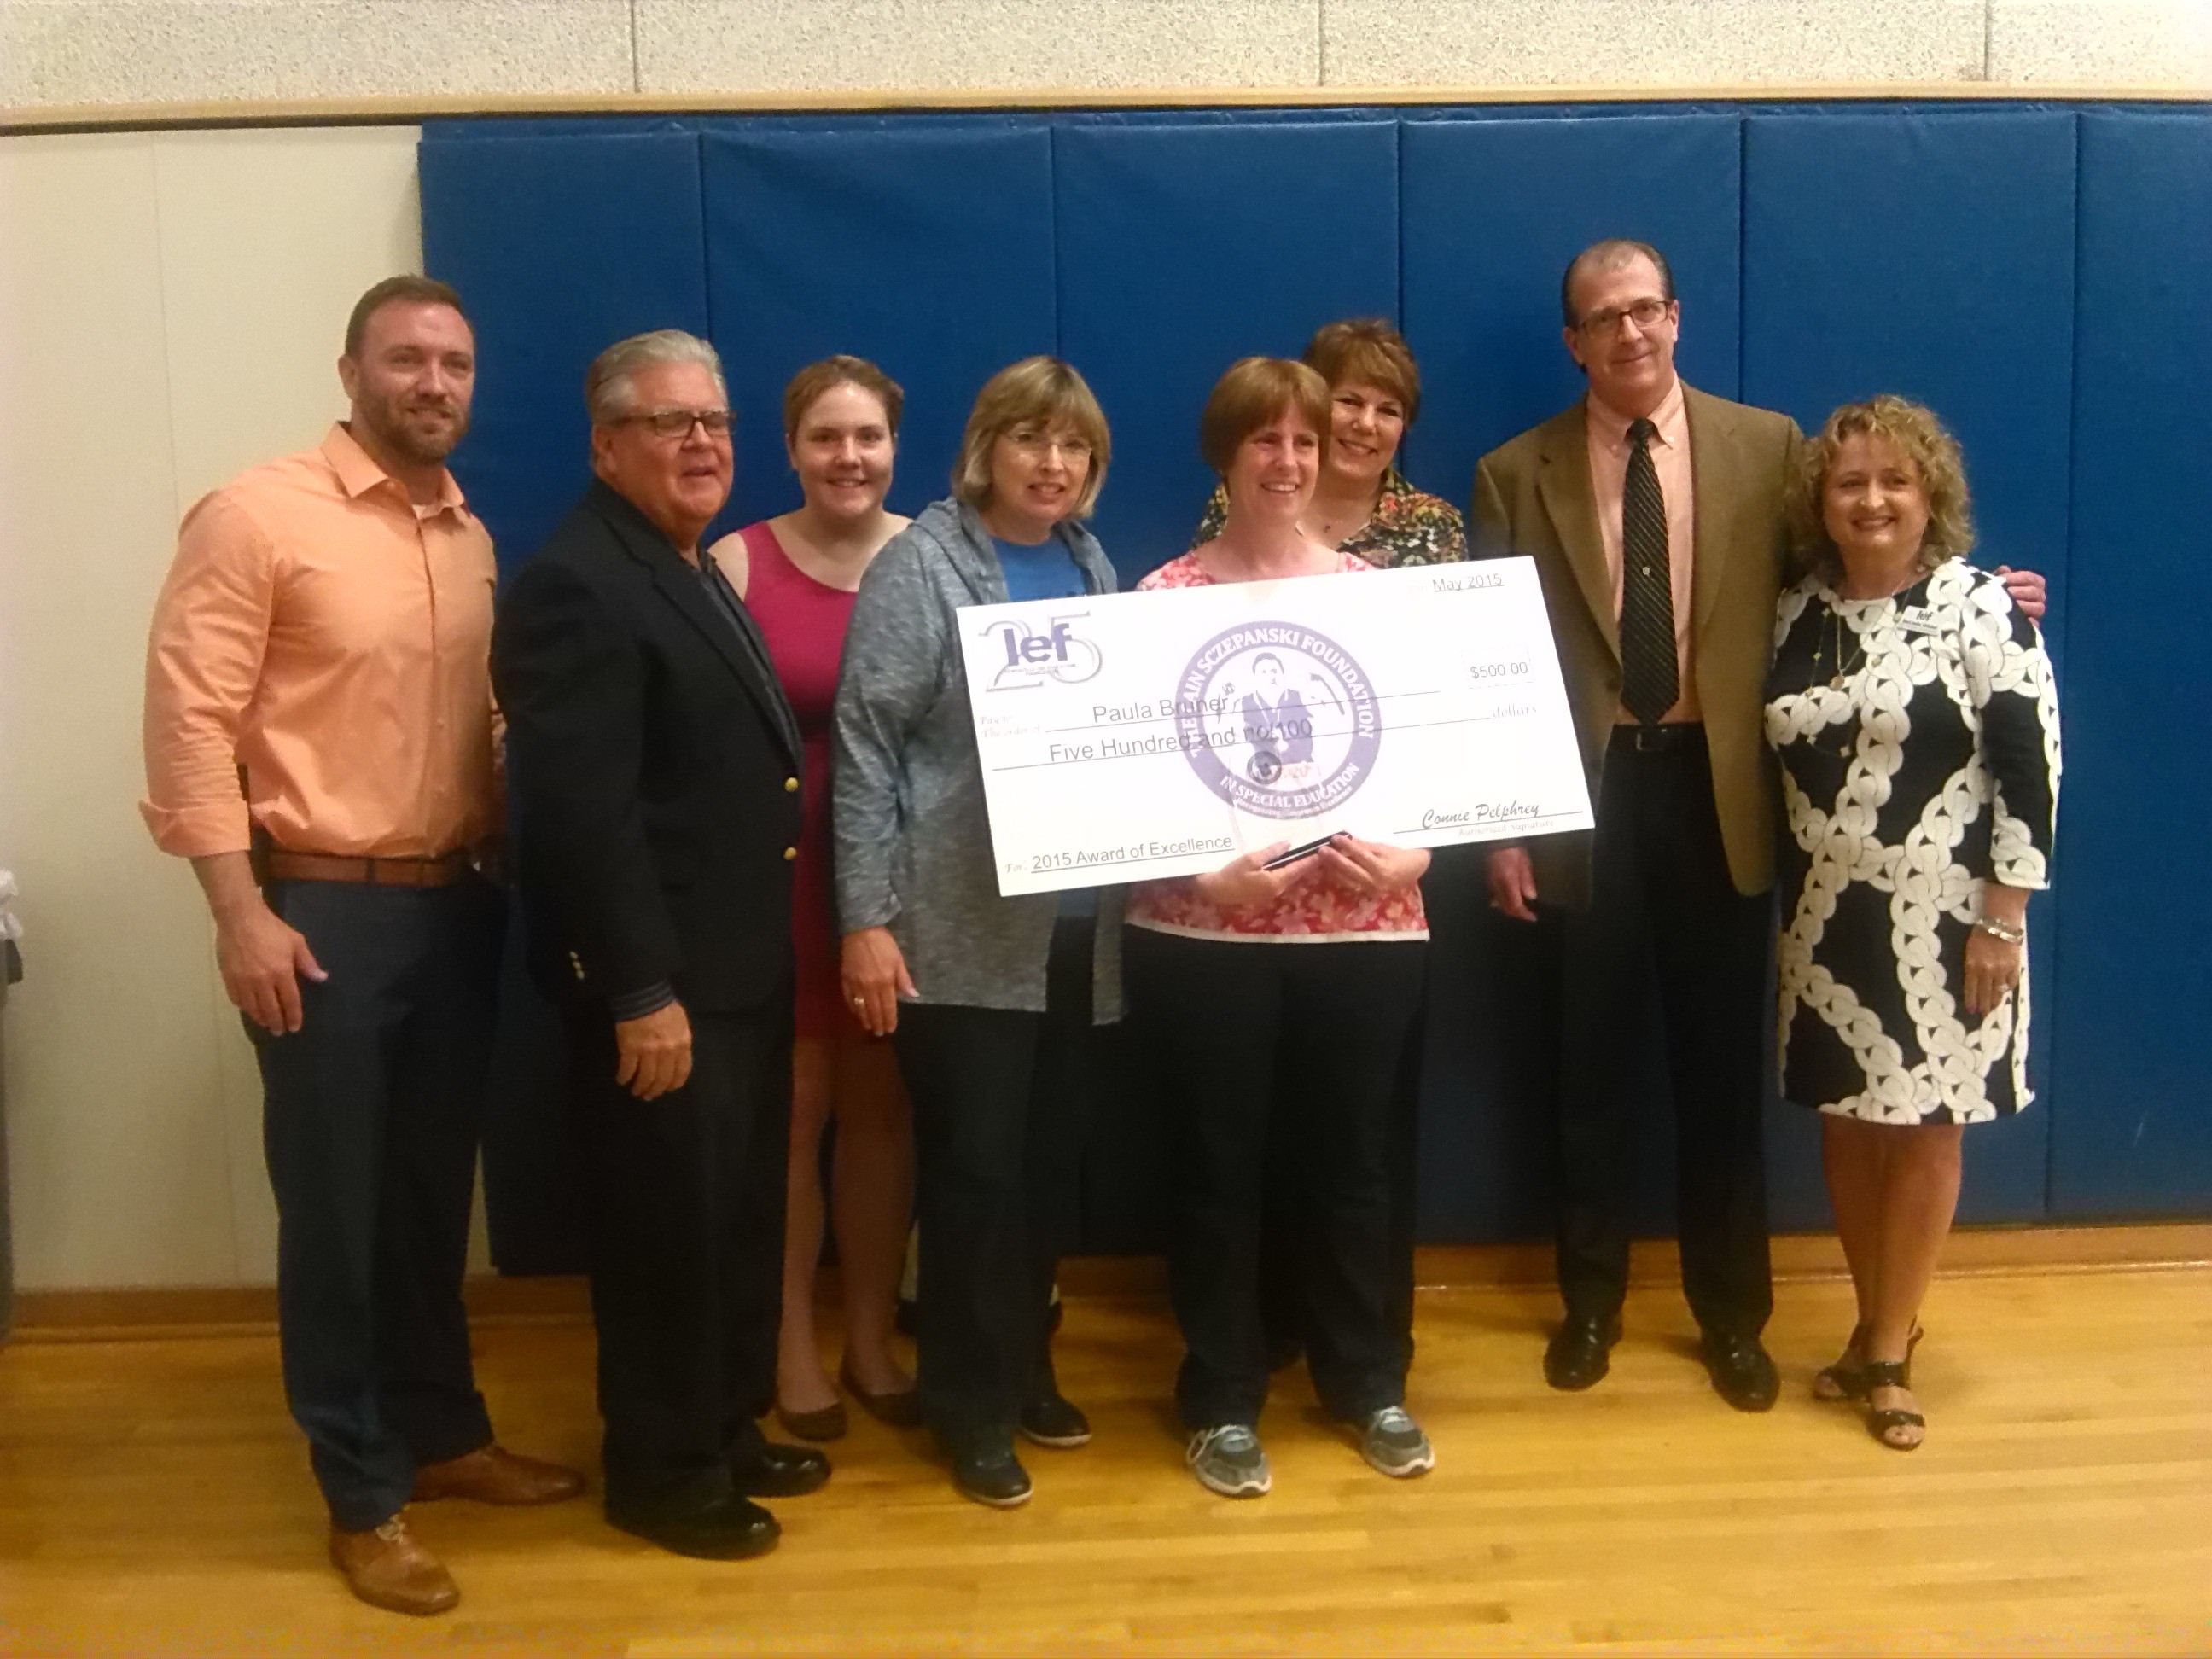 The Sczepanski family presents the Cain Sczepanski Award for Excellence in Special Education to Paula Bruner at Forestwood Middle School